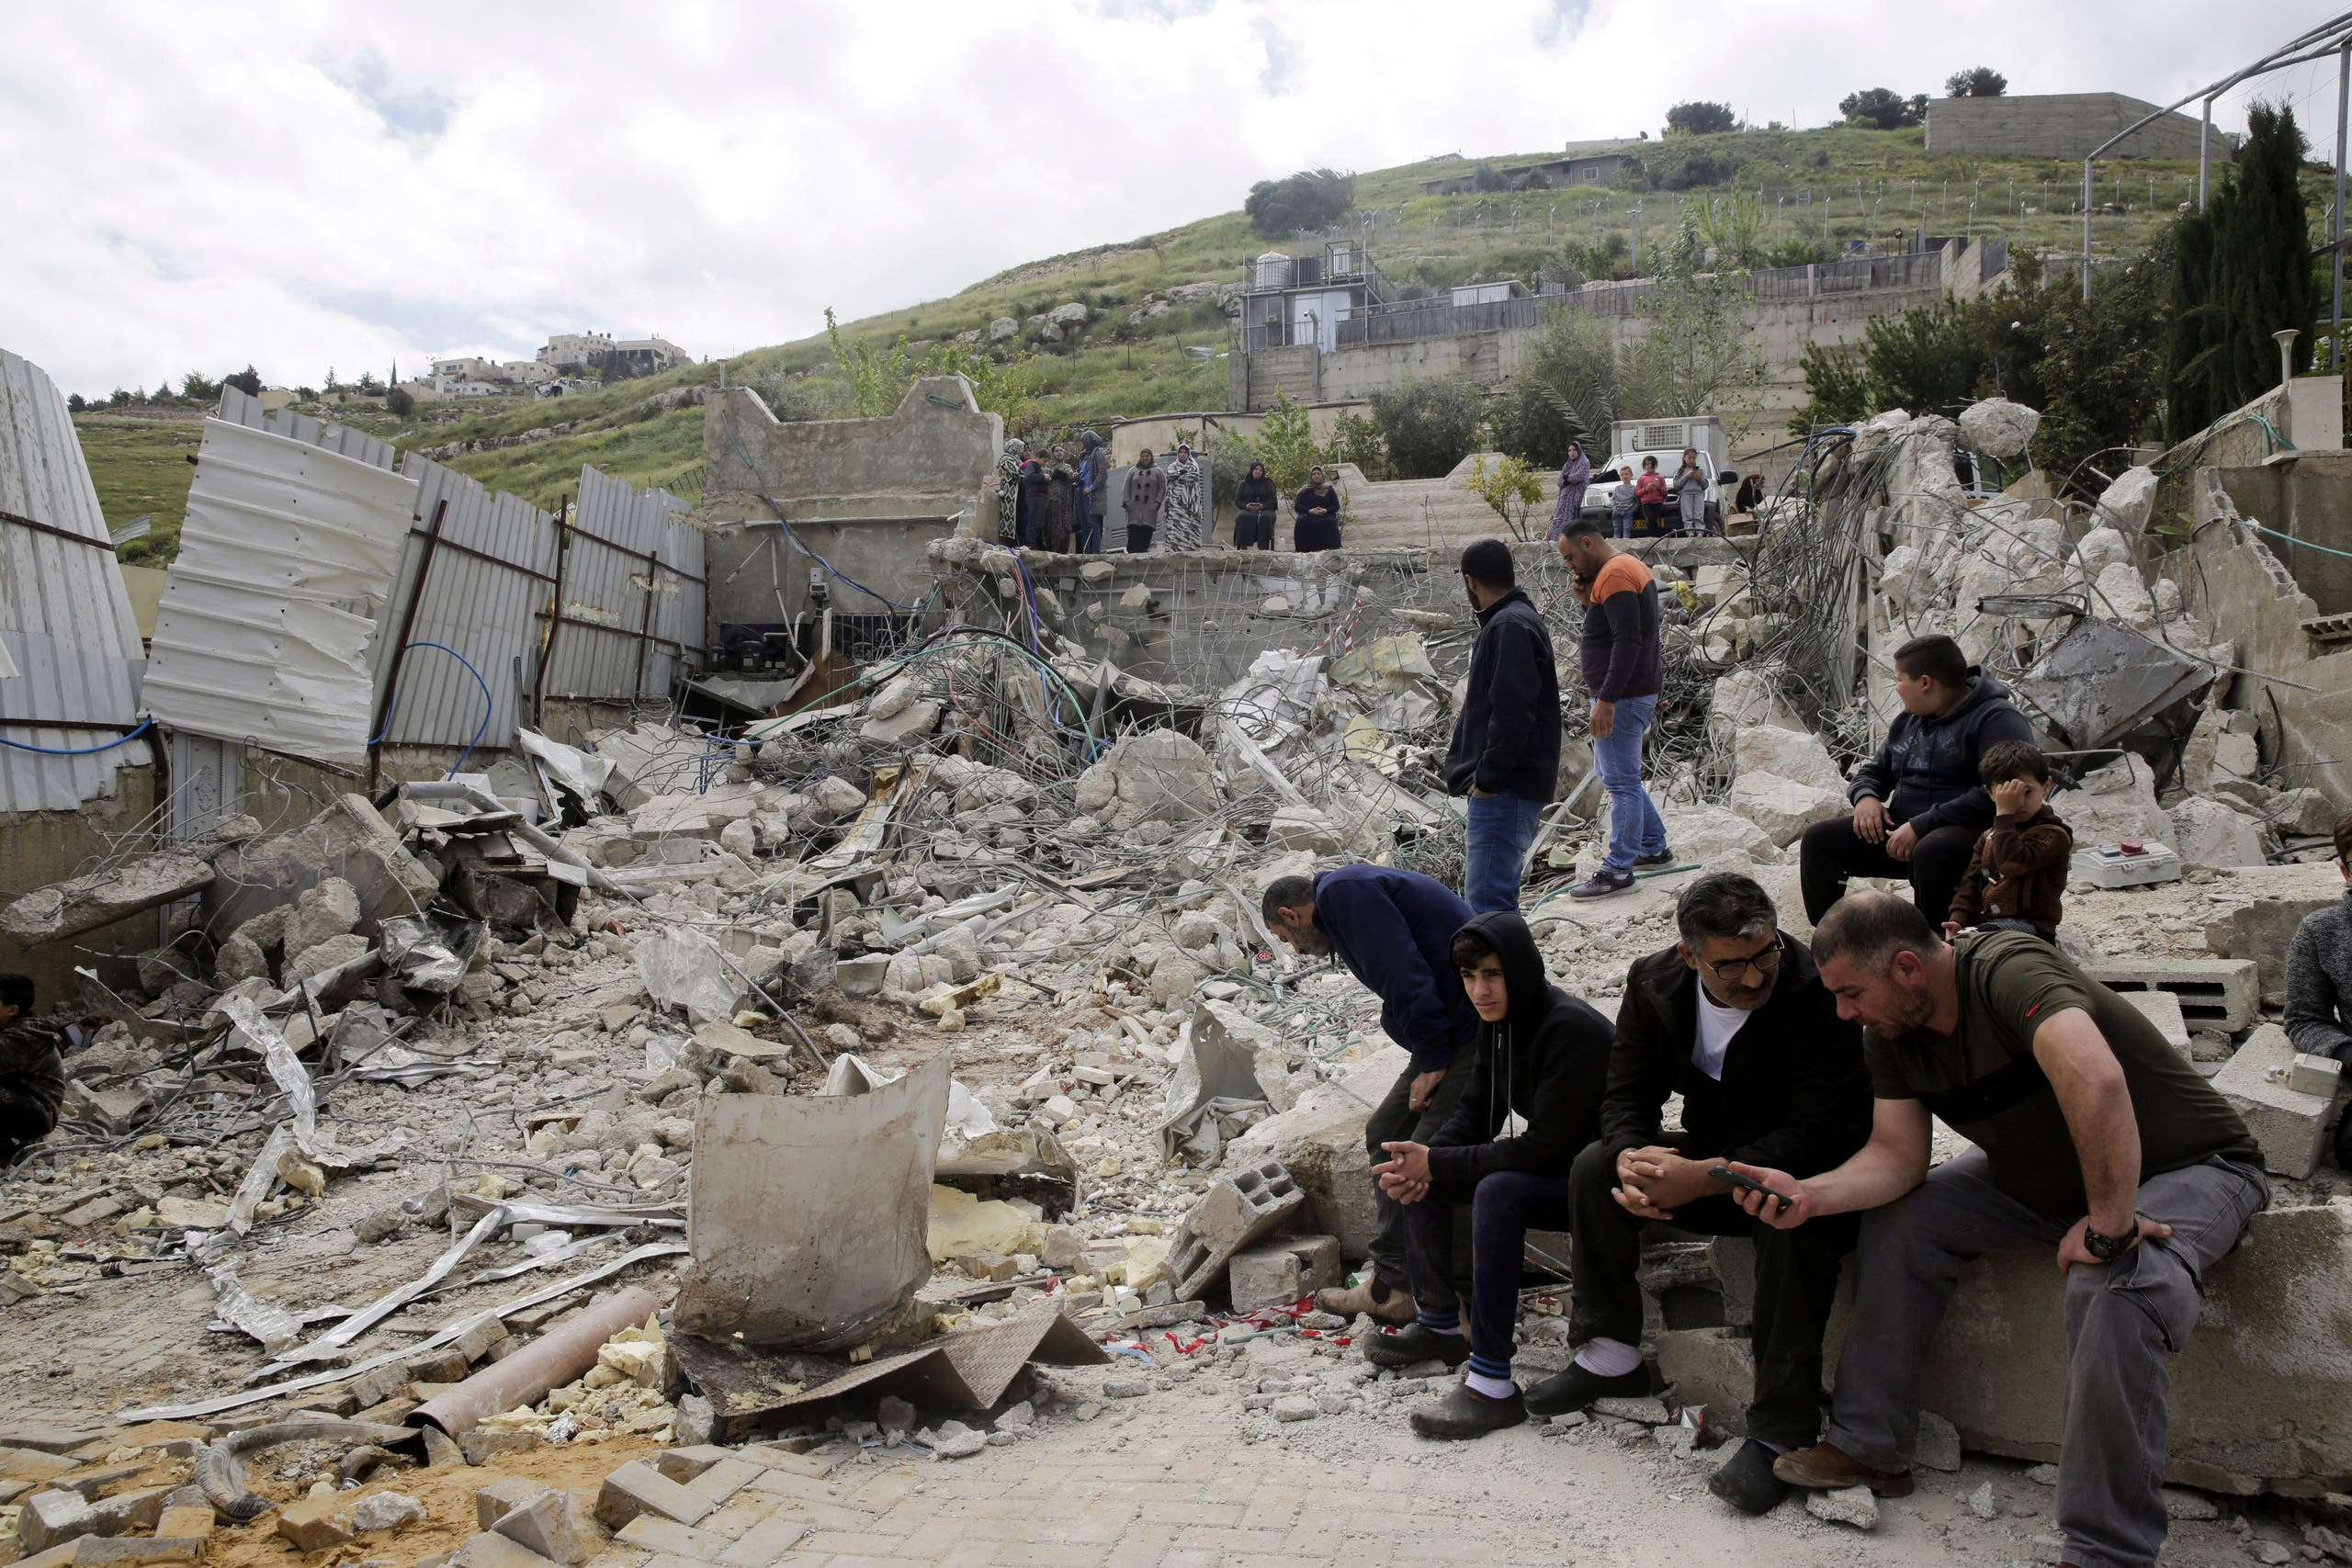 Palestinians sit by a family house destroyed by Israeli authorities in east Jerusalem's neighborhood of Silwan. (File photo: AP)